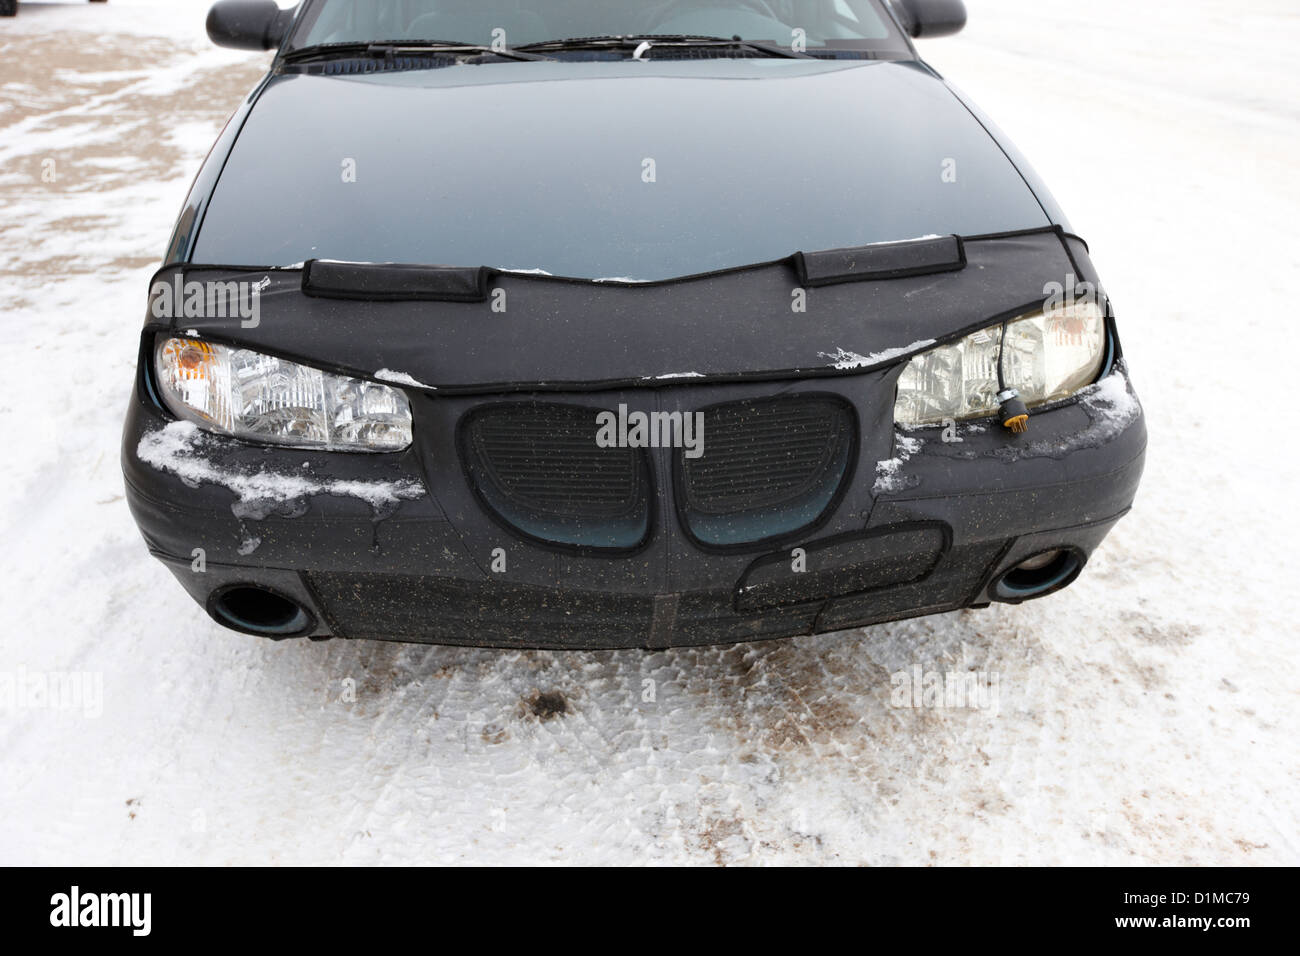 car nose full bra protector fitted during canadian winter Kamsack Saskatchewan Canada - Stock Image